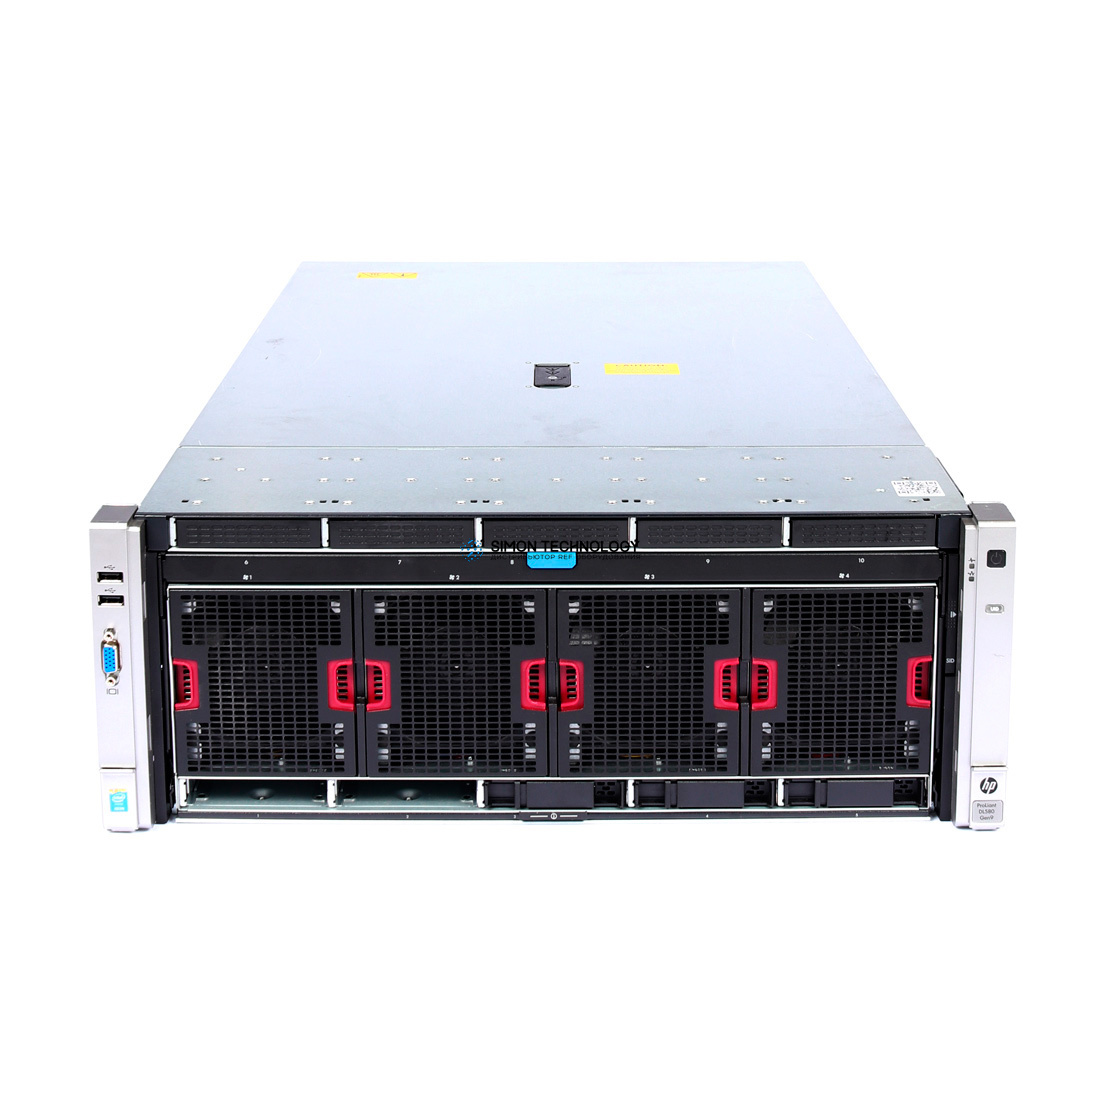 Сервер HP DL580 G9 5SFF CTO Server (793161-B21)